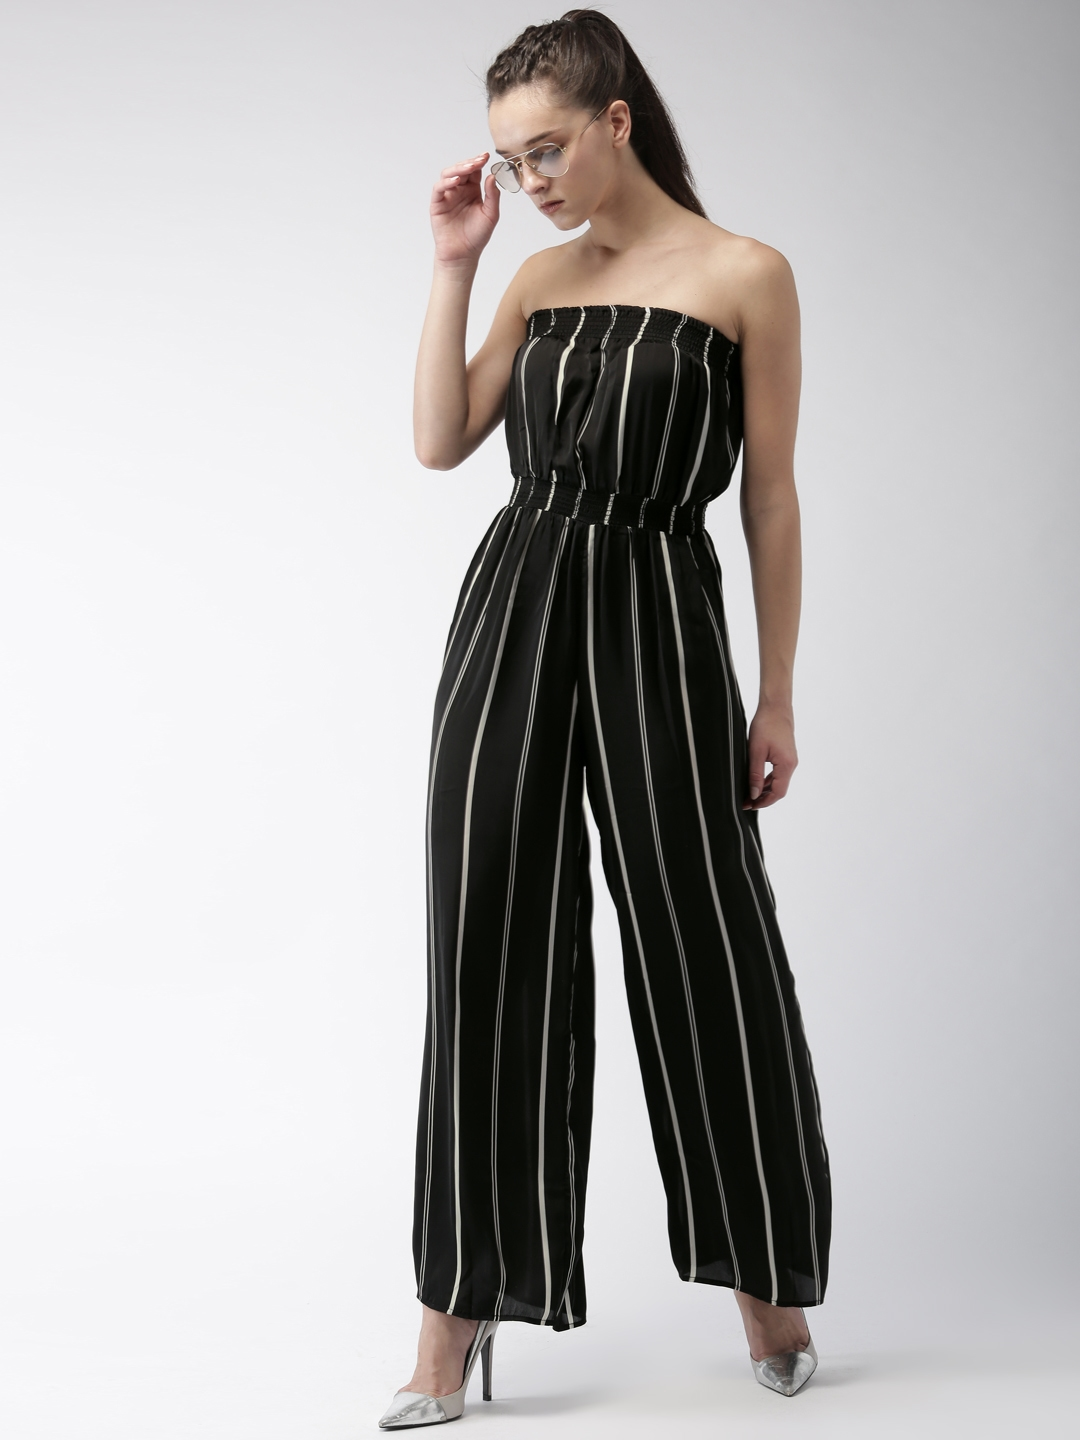 56ddb2bb2fe Buy FOREVER 21 Black   White Striped Basic Jumpsuit - Jumpsuit for ...